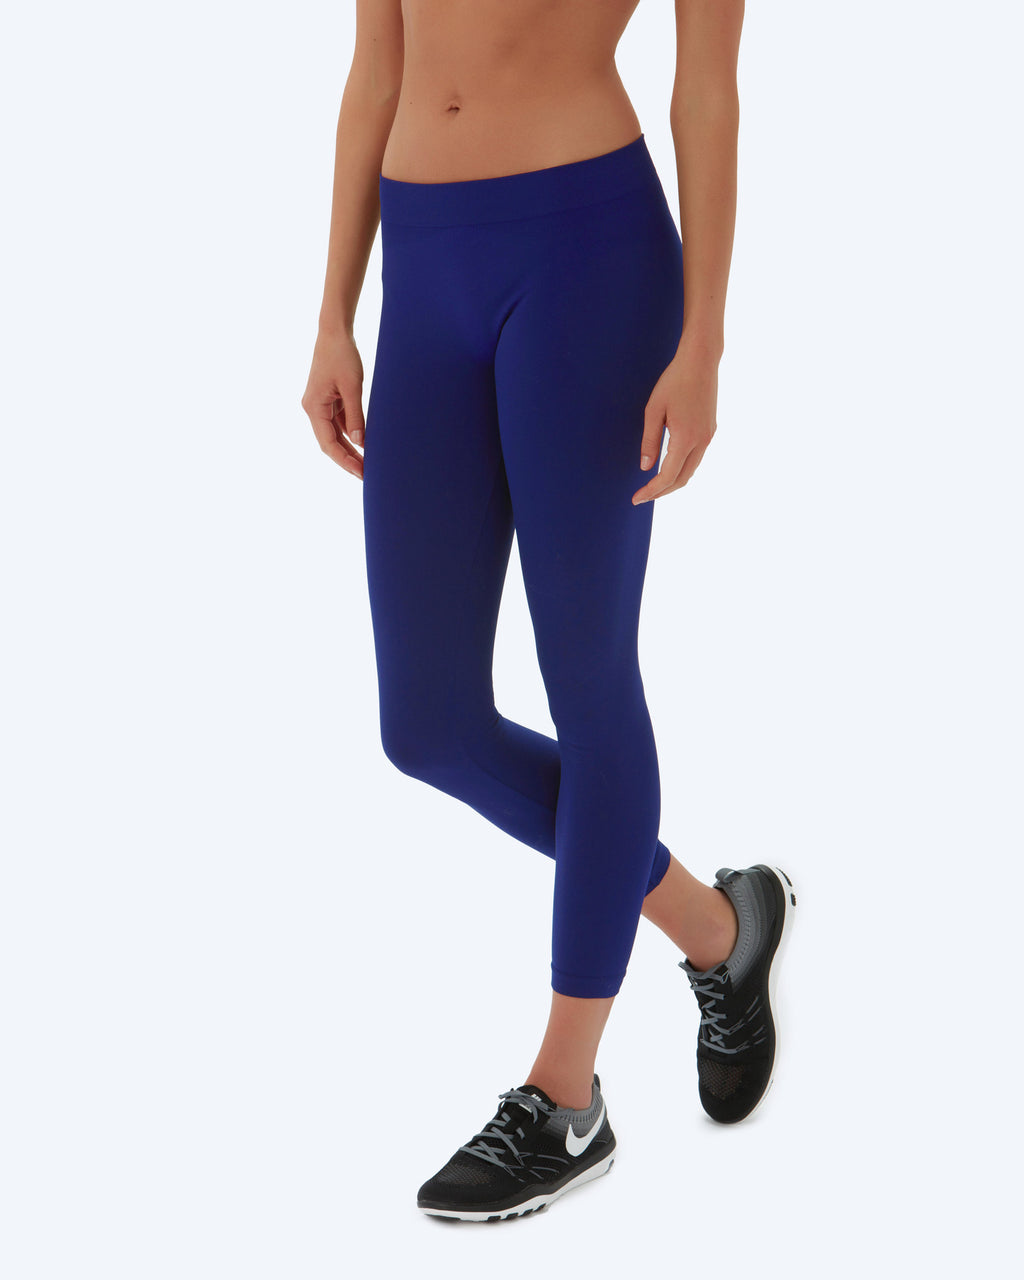 Little Blue Legging - Blue